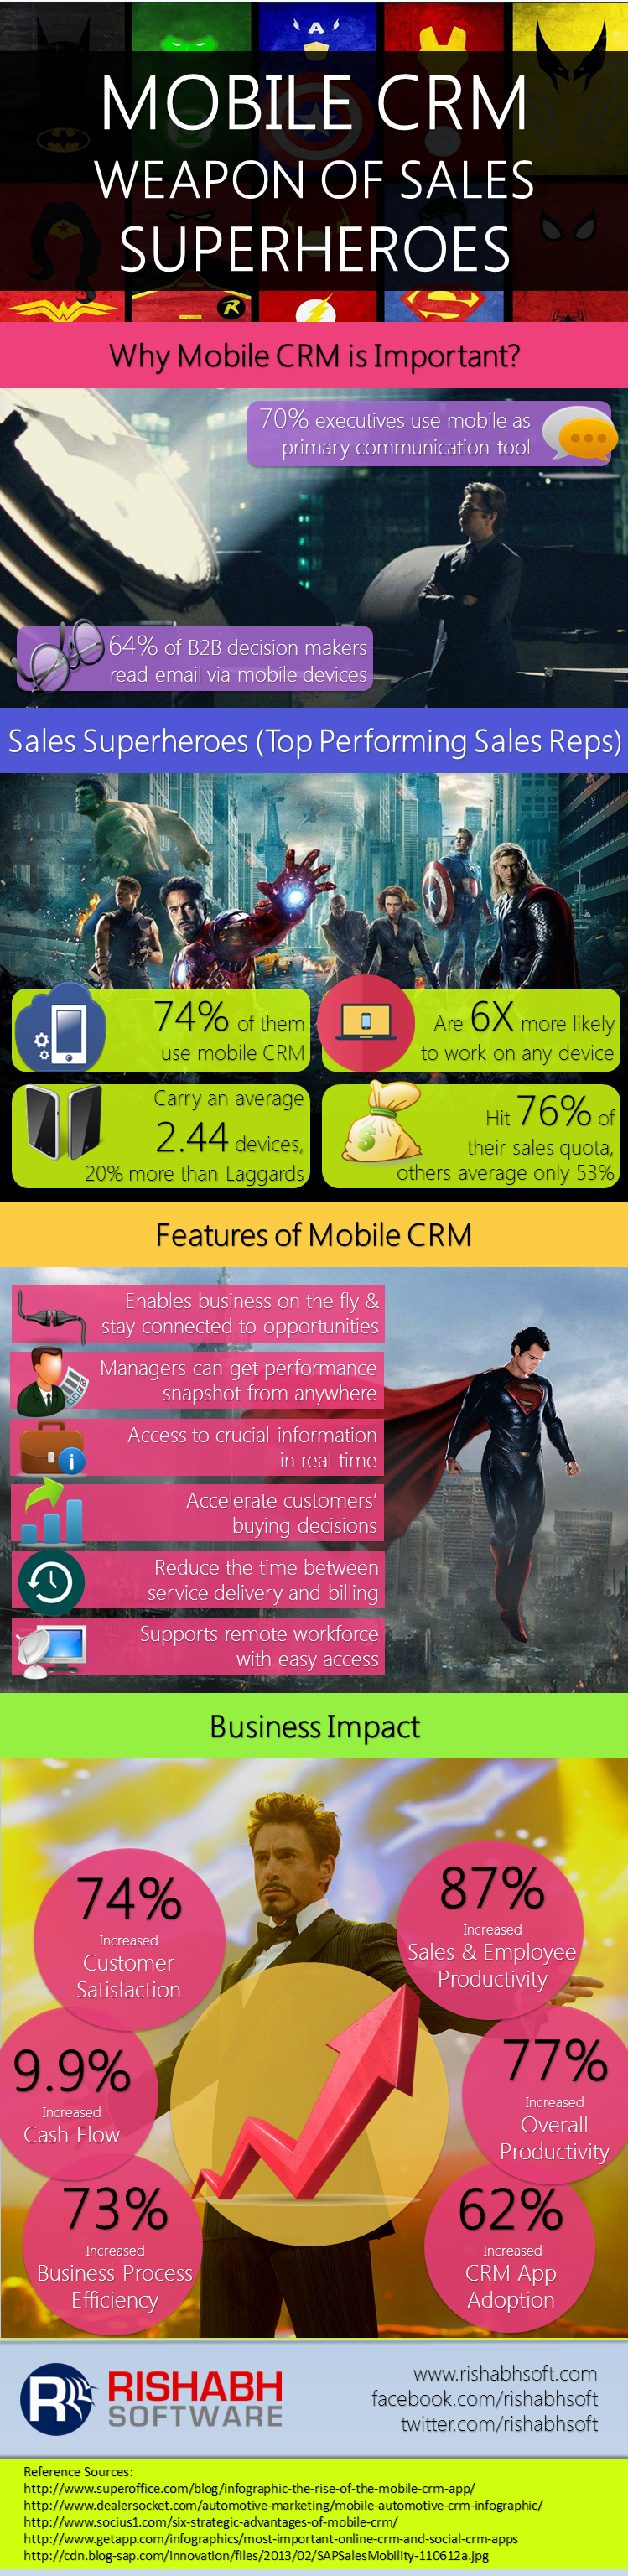 Mobile-CRM-Infographic